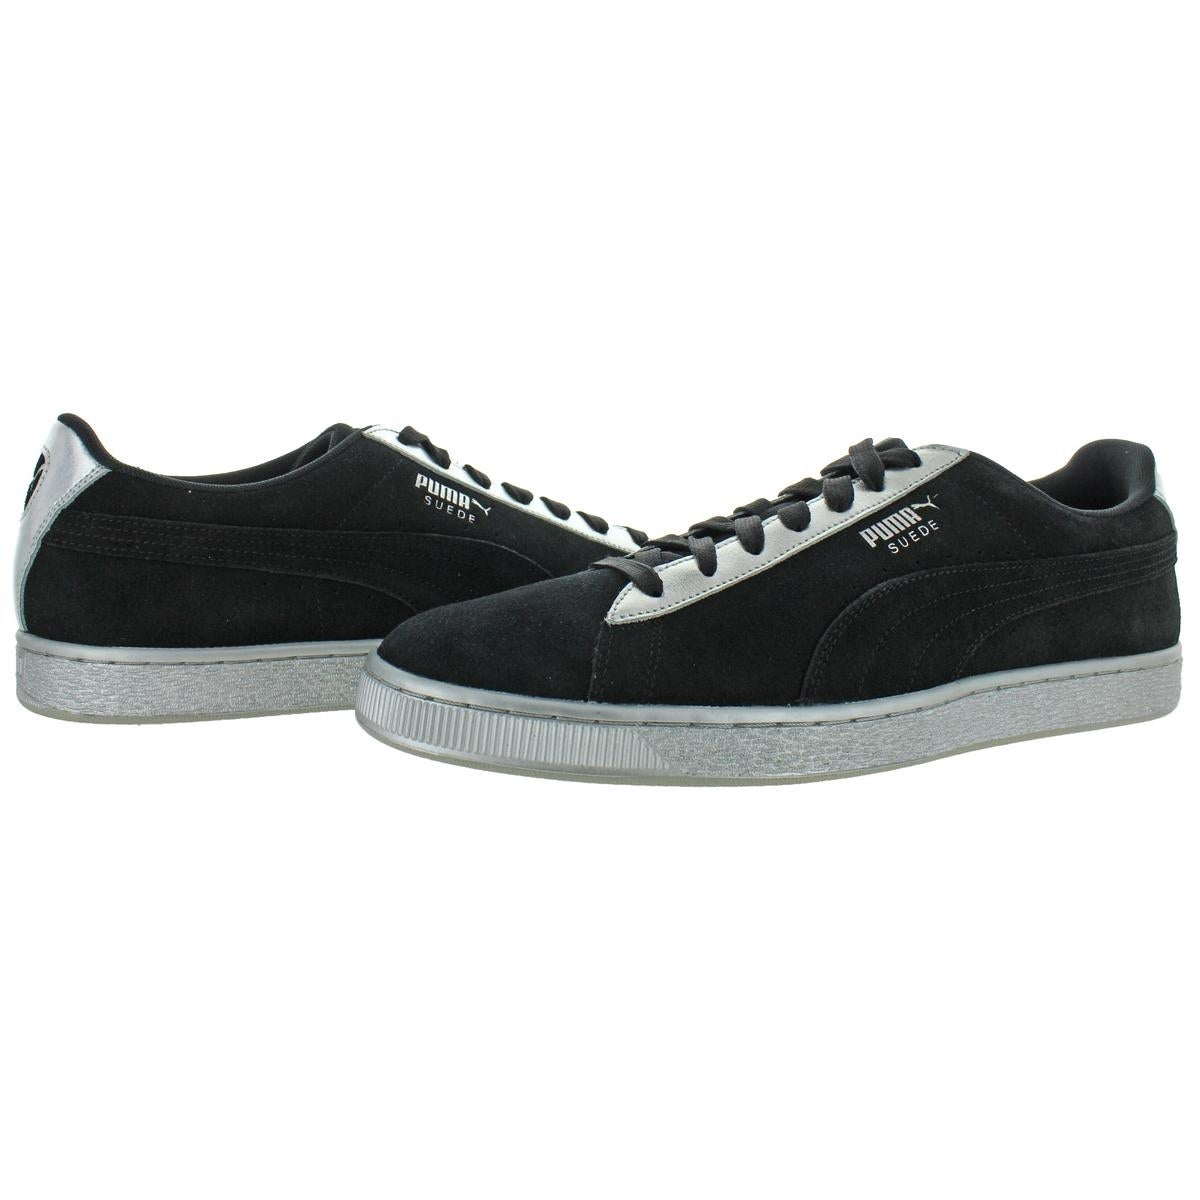 Puma Mens Suede Classic Metallic Sneakers Trainers Suede - Puma Black/Puma  Silver - 14 Medium (D)